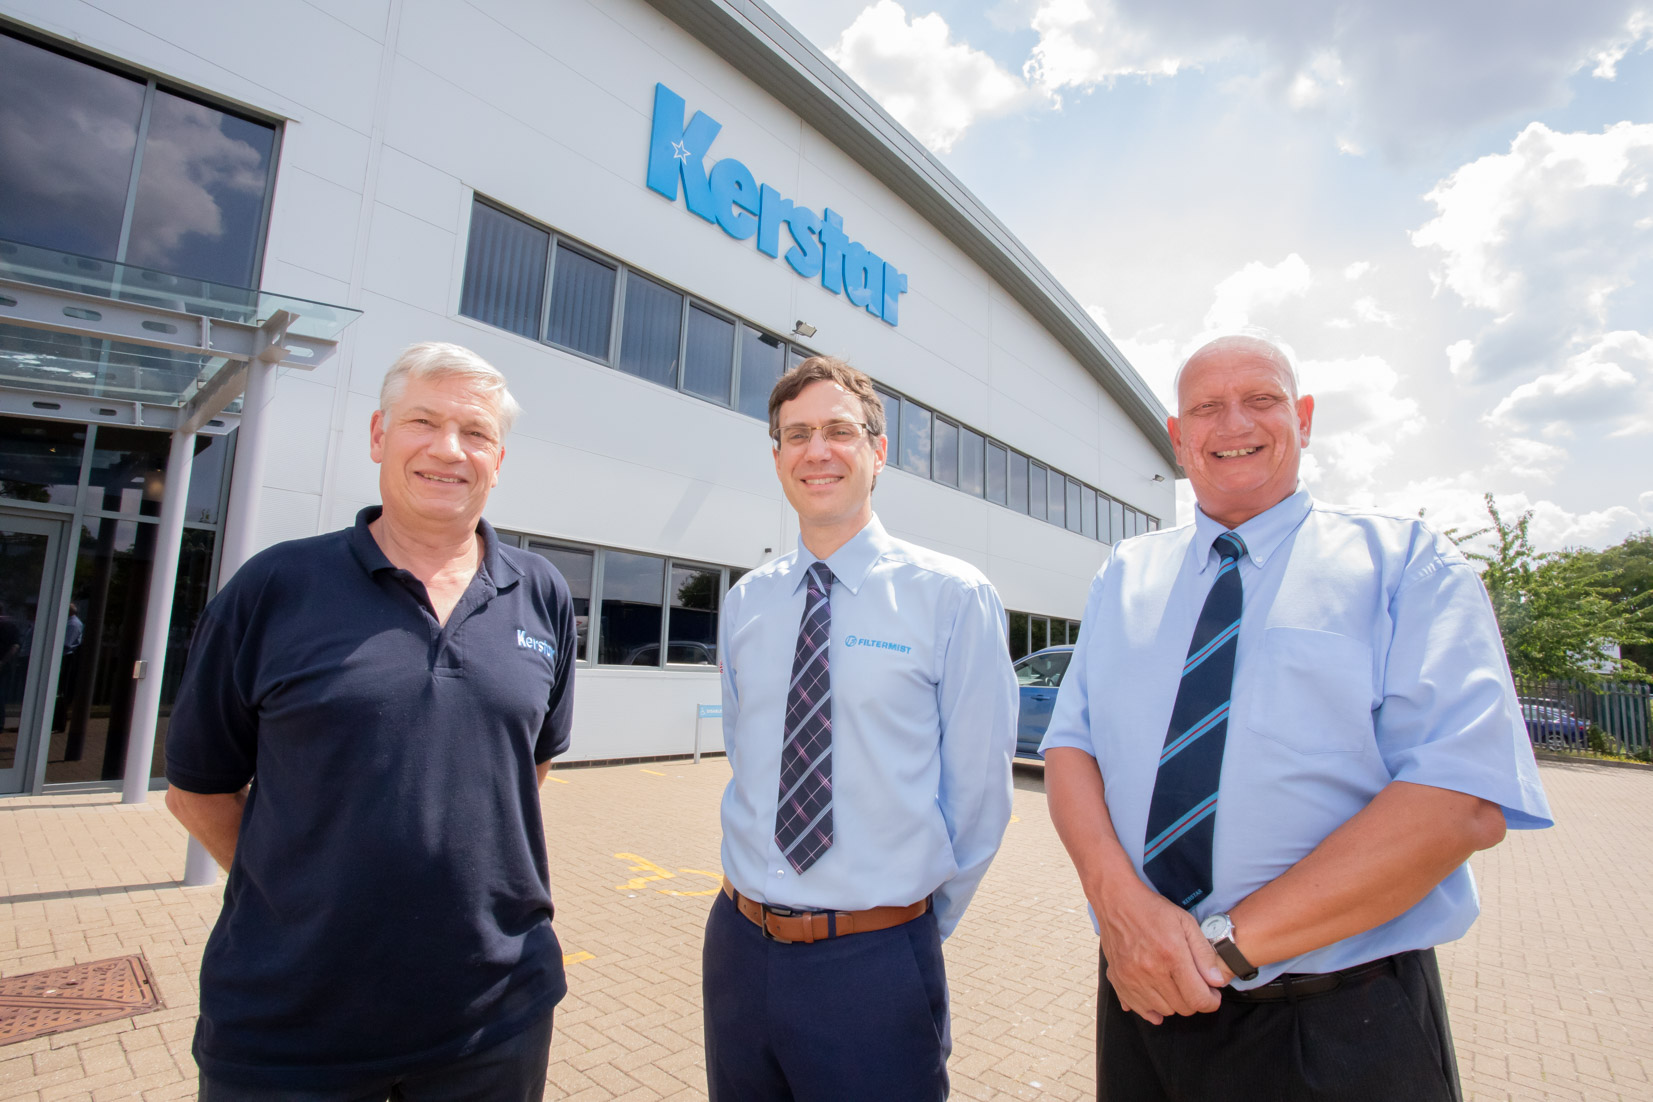 Filtermist International completes Kerstar Ltd purchase